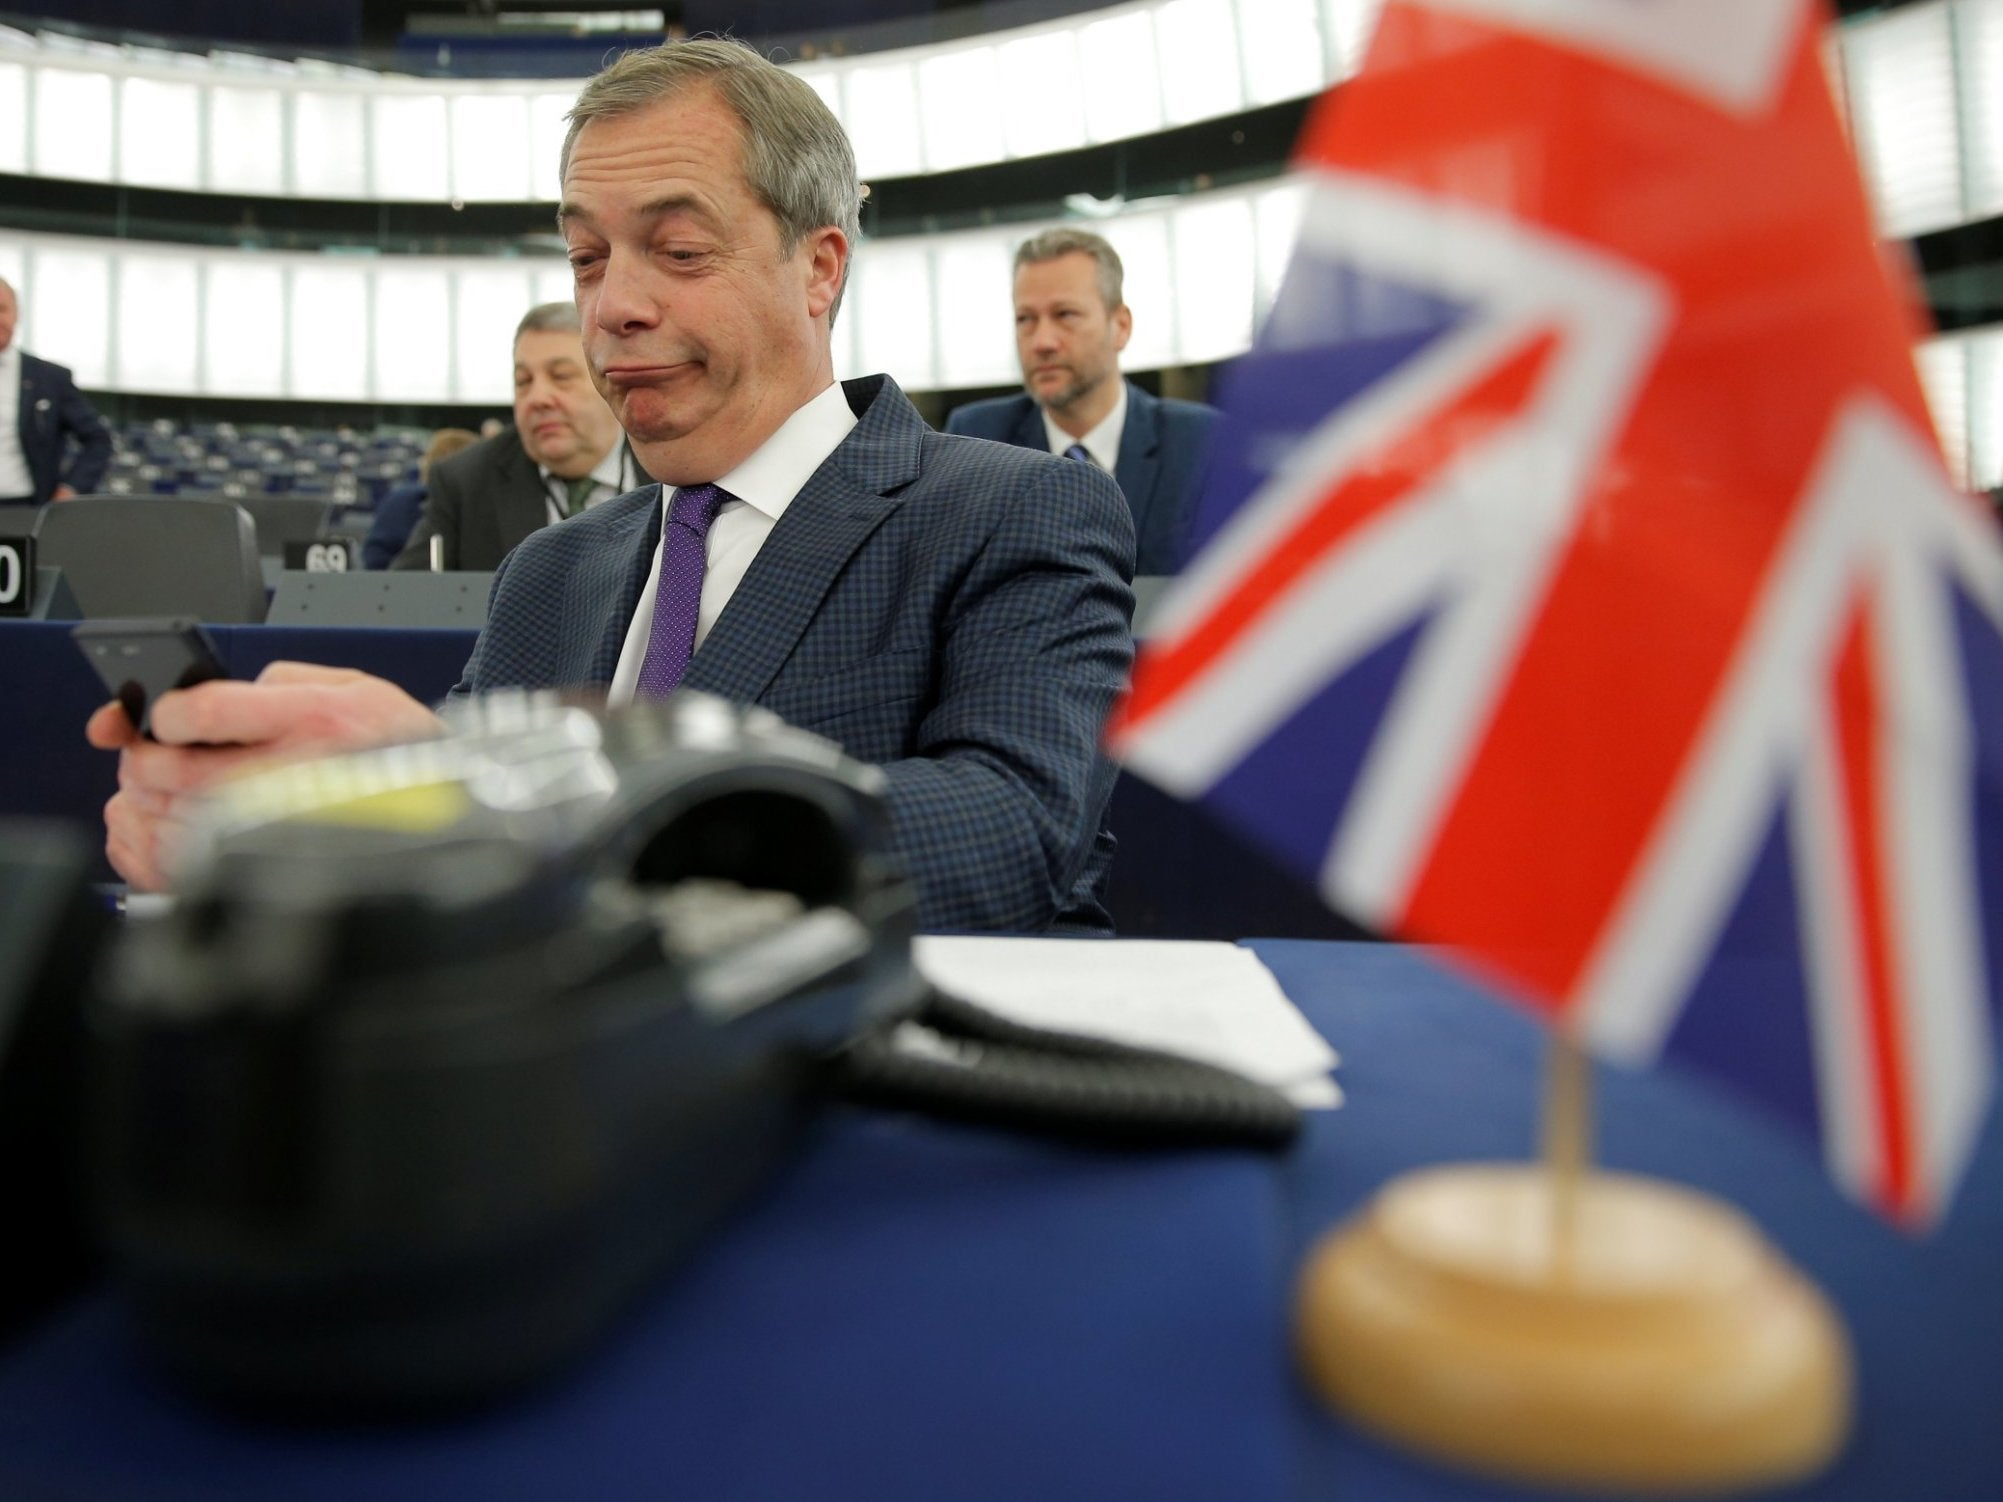 Brexit Party MEP complains about not having say on EU law after Brex…